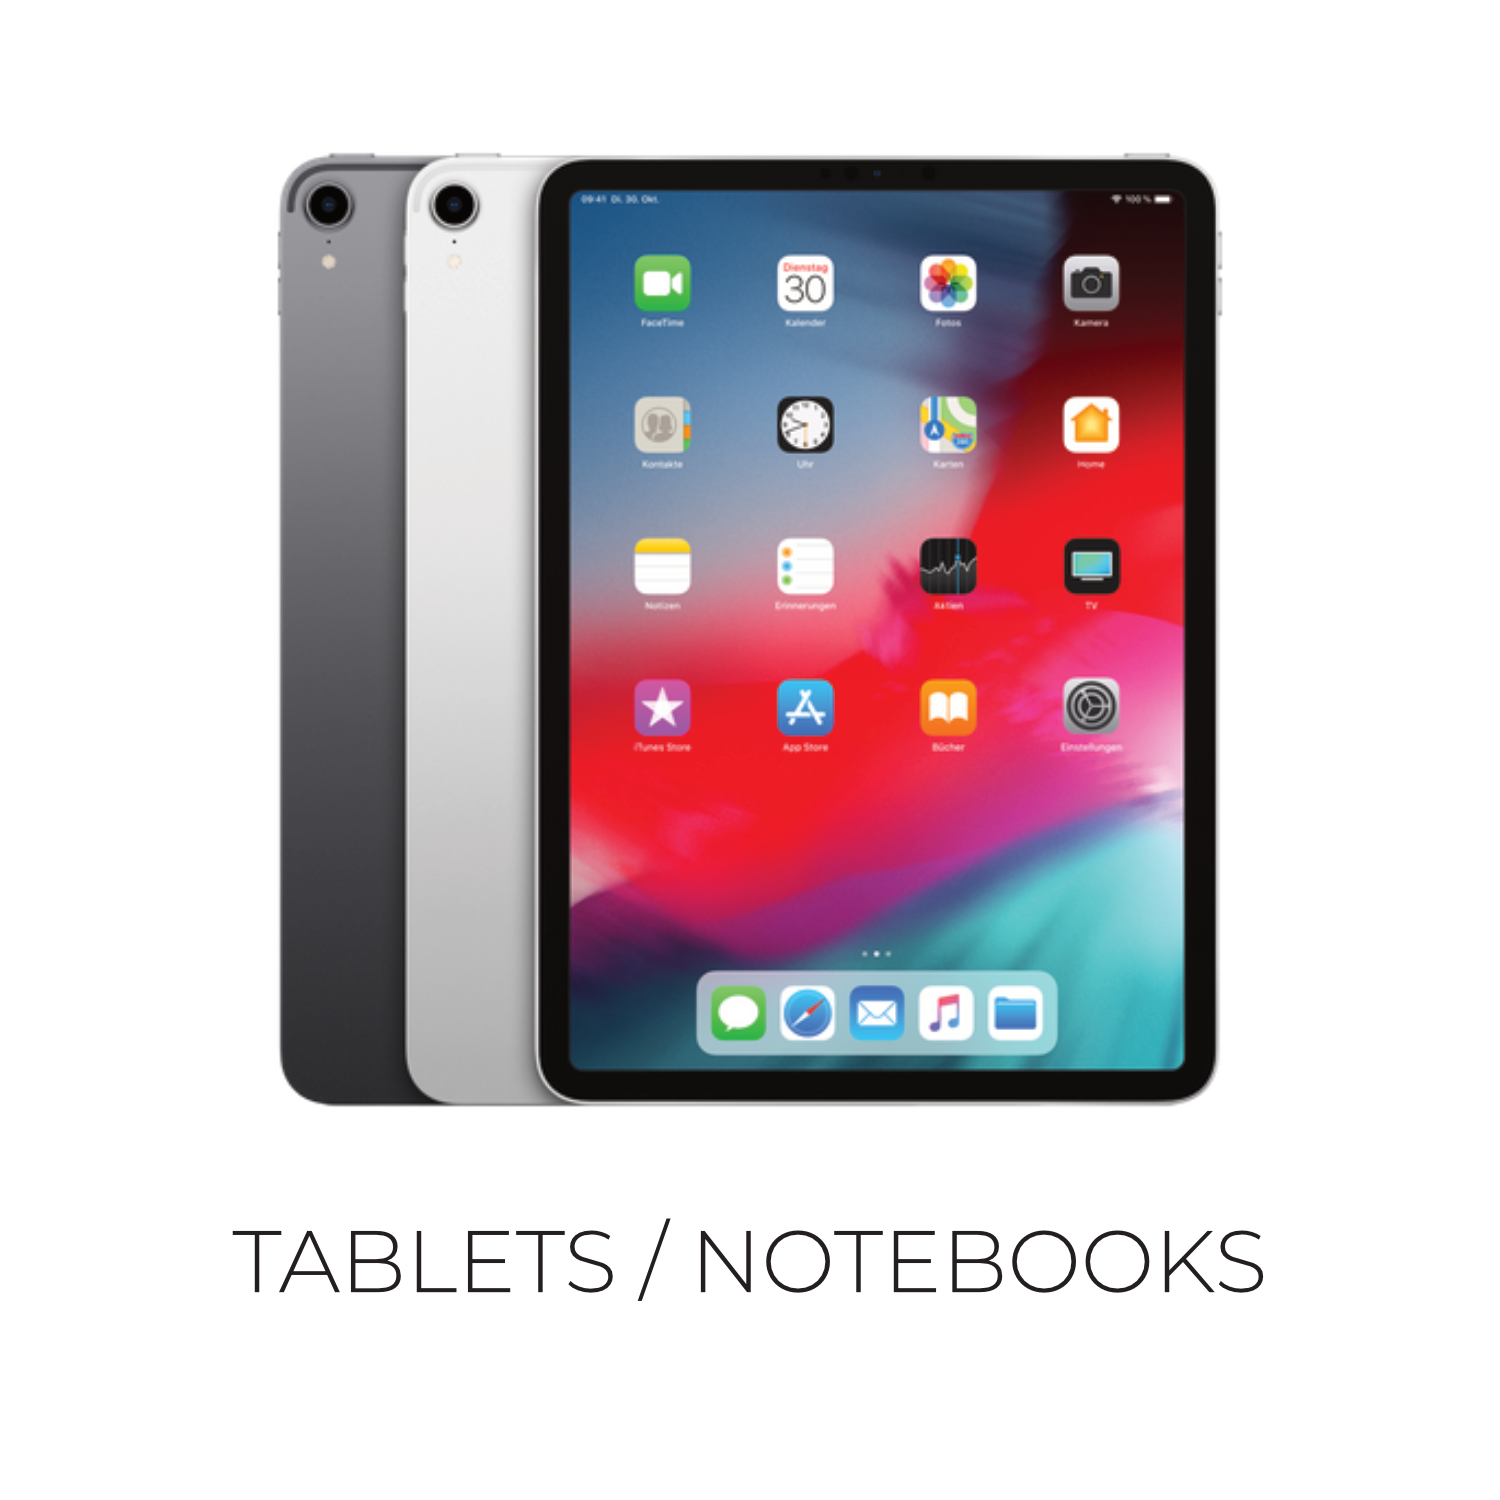 Tablets / Notebooks